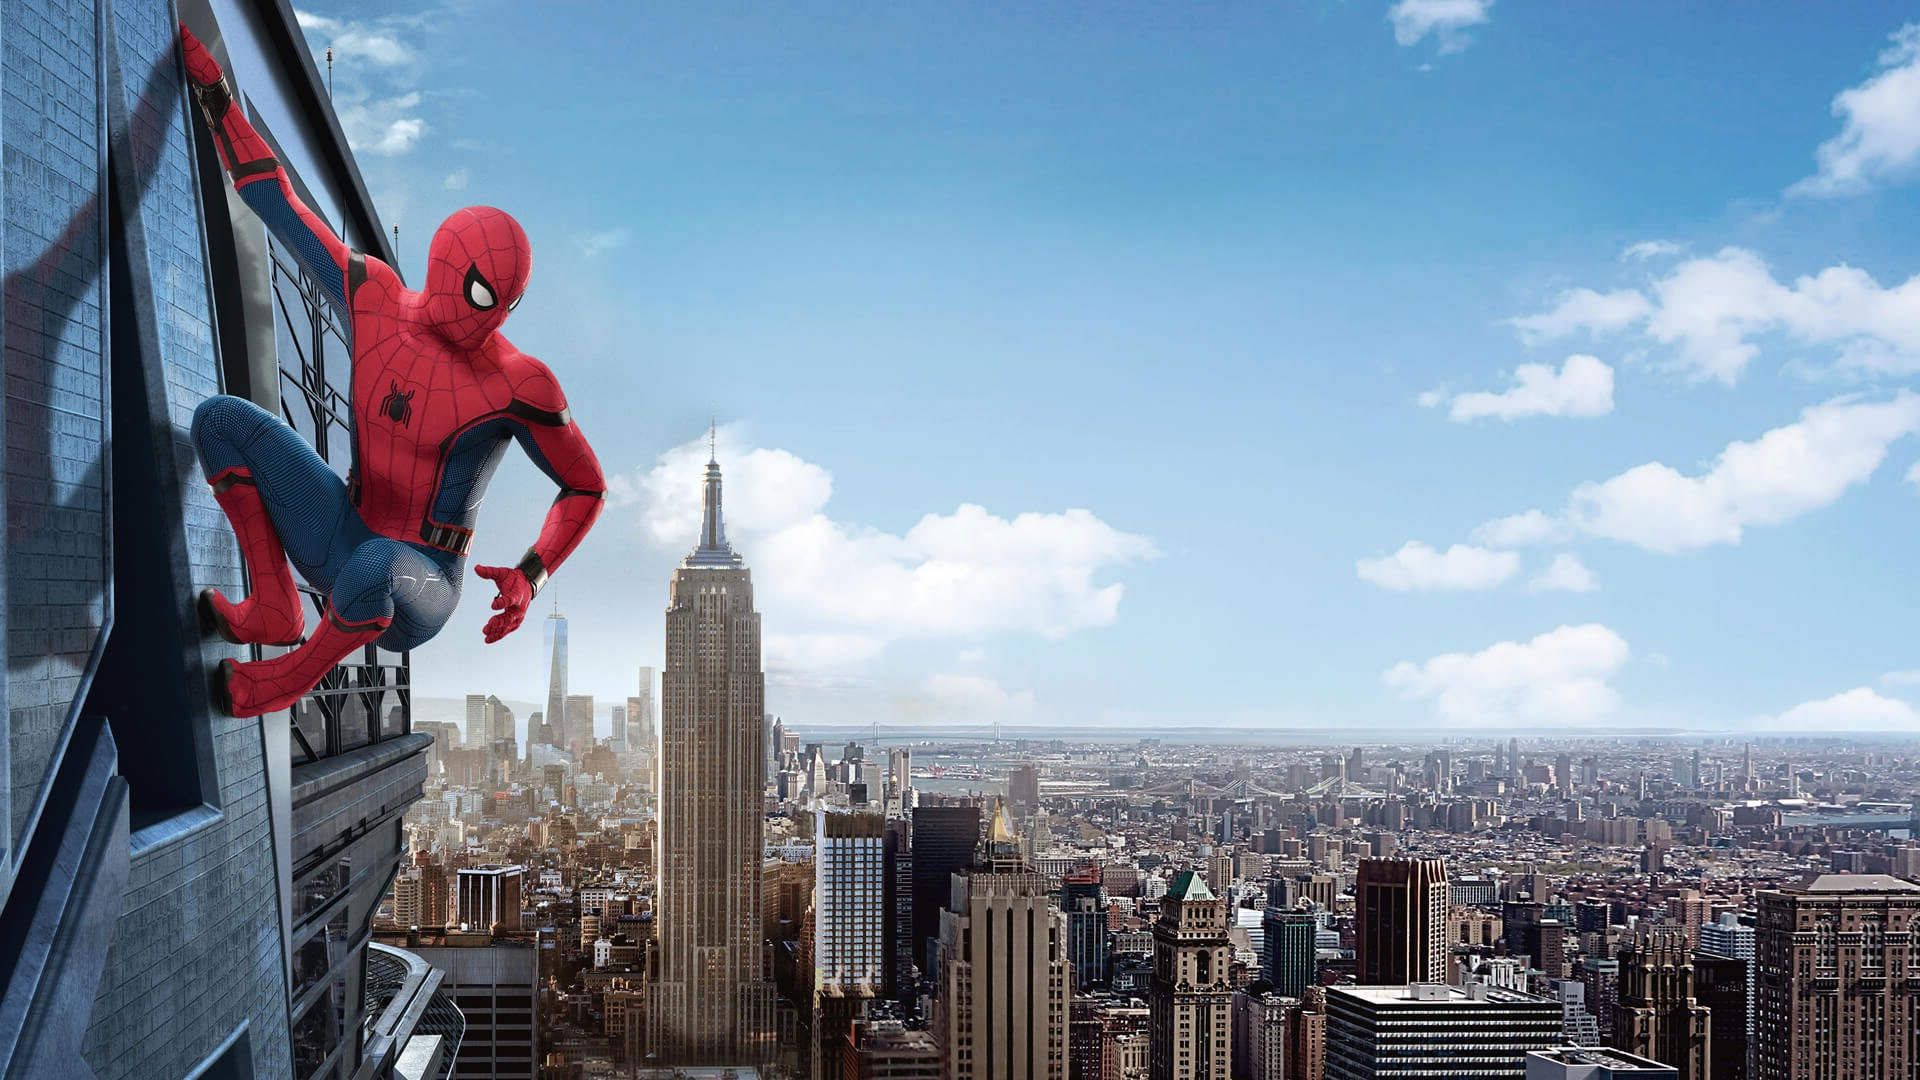 Spiderman wallpaper HD ·① Download free HD wallpapers for desktop and mobile devices in any